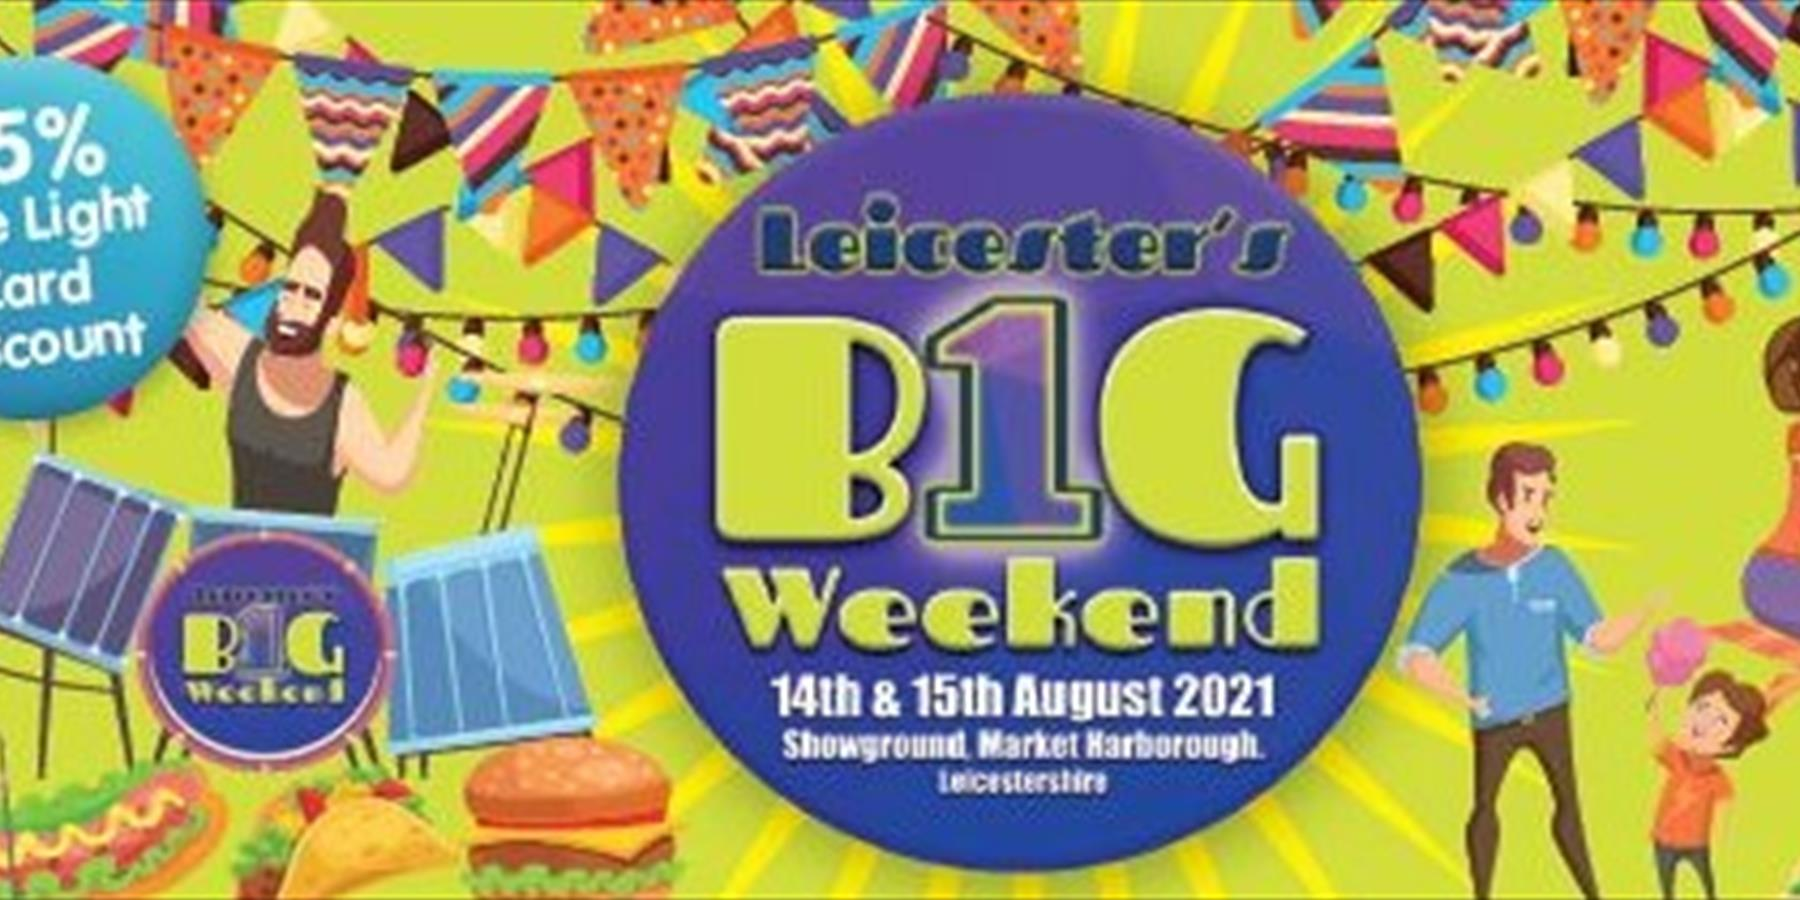 Leicester's 1 big weekend event poster